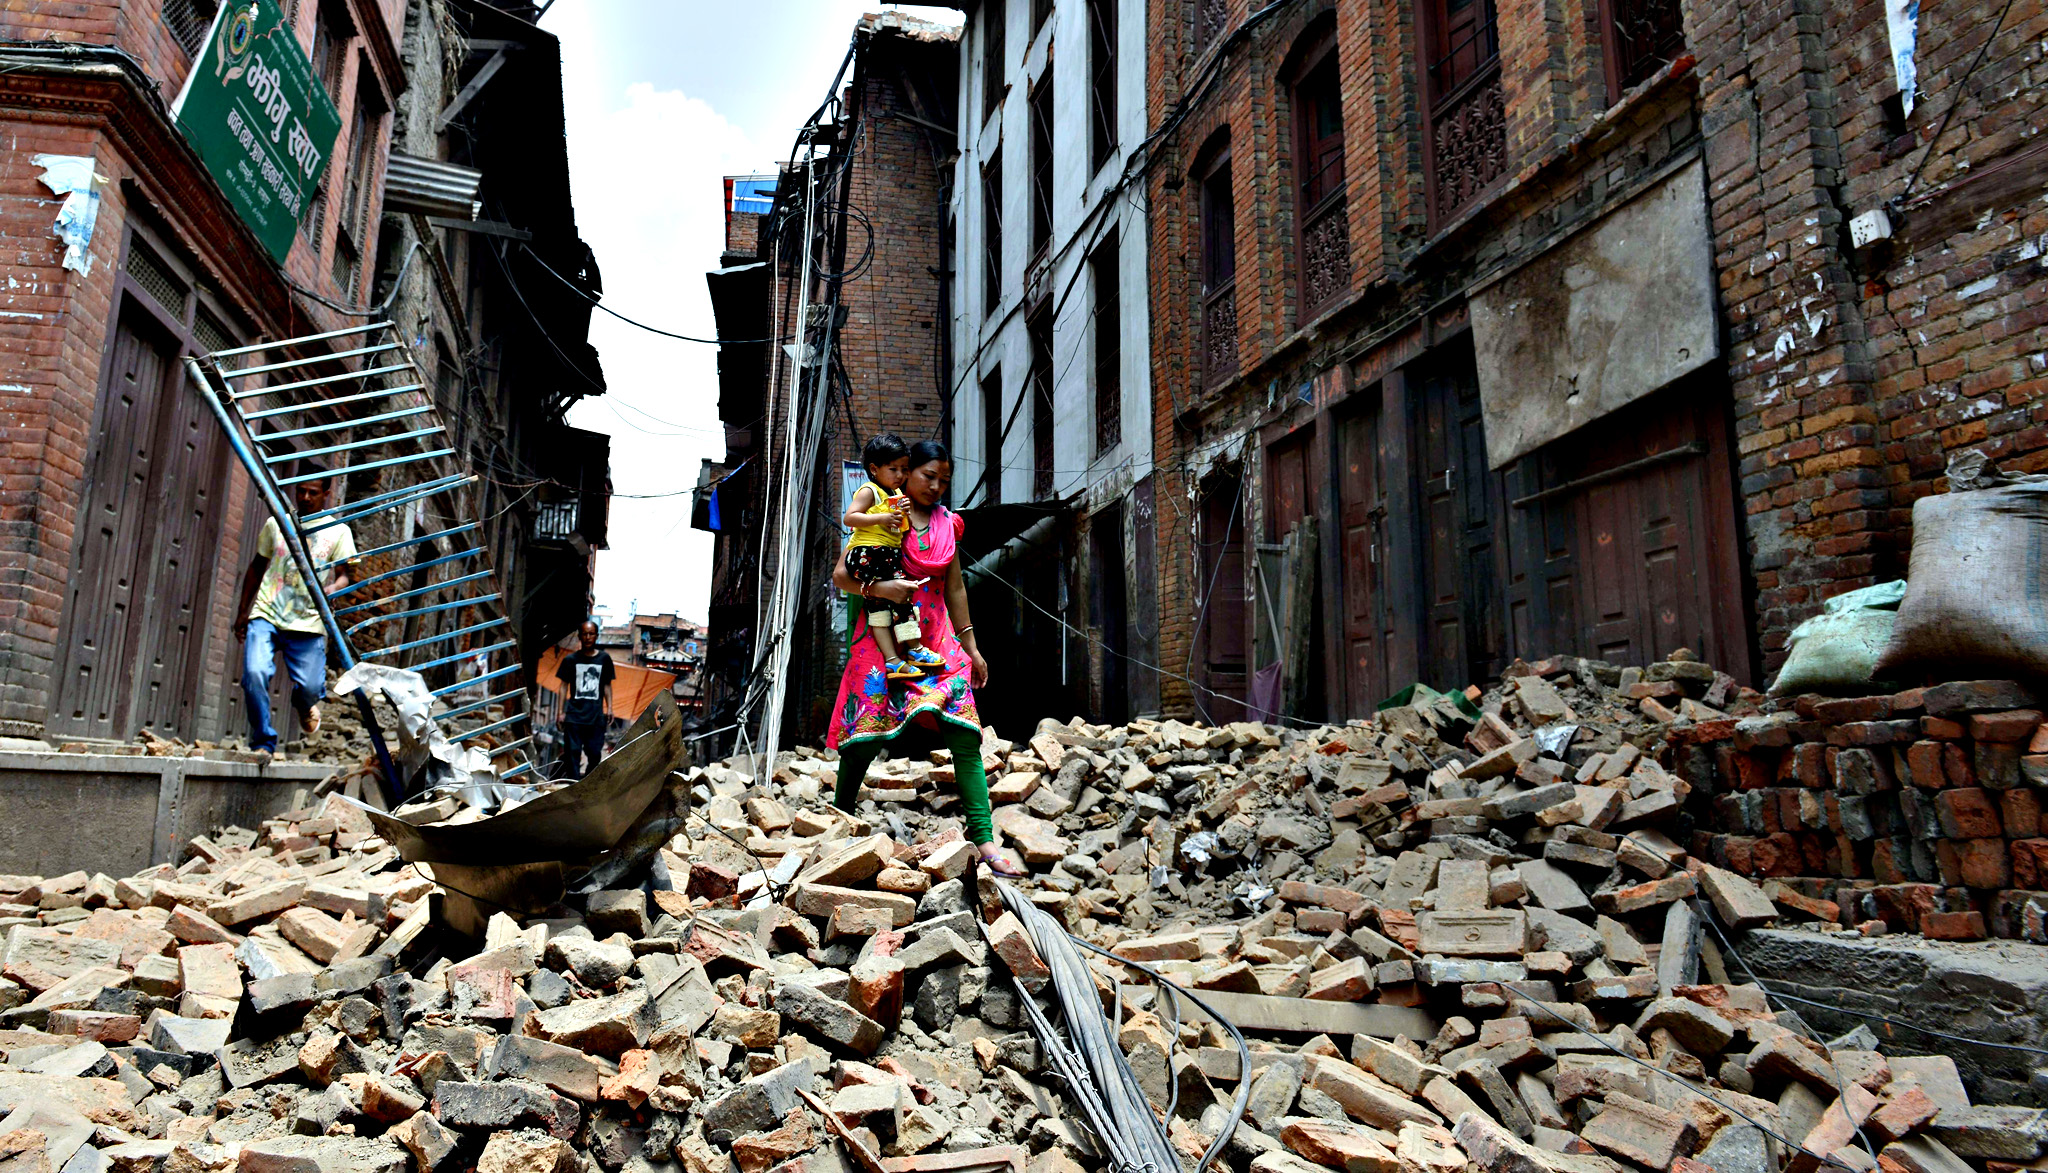 A Nepalese resident carries a child as she walks past damaged homes in Bhaktapur on the outskirts of Kathmandu on May 13, 2015, following a new earthquake that hit May 12.  Rescuers were battling to reach survivors of a deadly new earthquake in Nepal that triggered landslides and brought down buildings, as the search continued for a US military helicopter that went missing while delivering aid. Thousands of traumatised survivors spent the night outdoors, afraid to return to their houses after the 7.3-magnitude quake hit, less than three weeks after the country was devastated by its deadliest quake in more than 80 years.